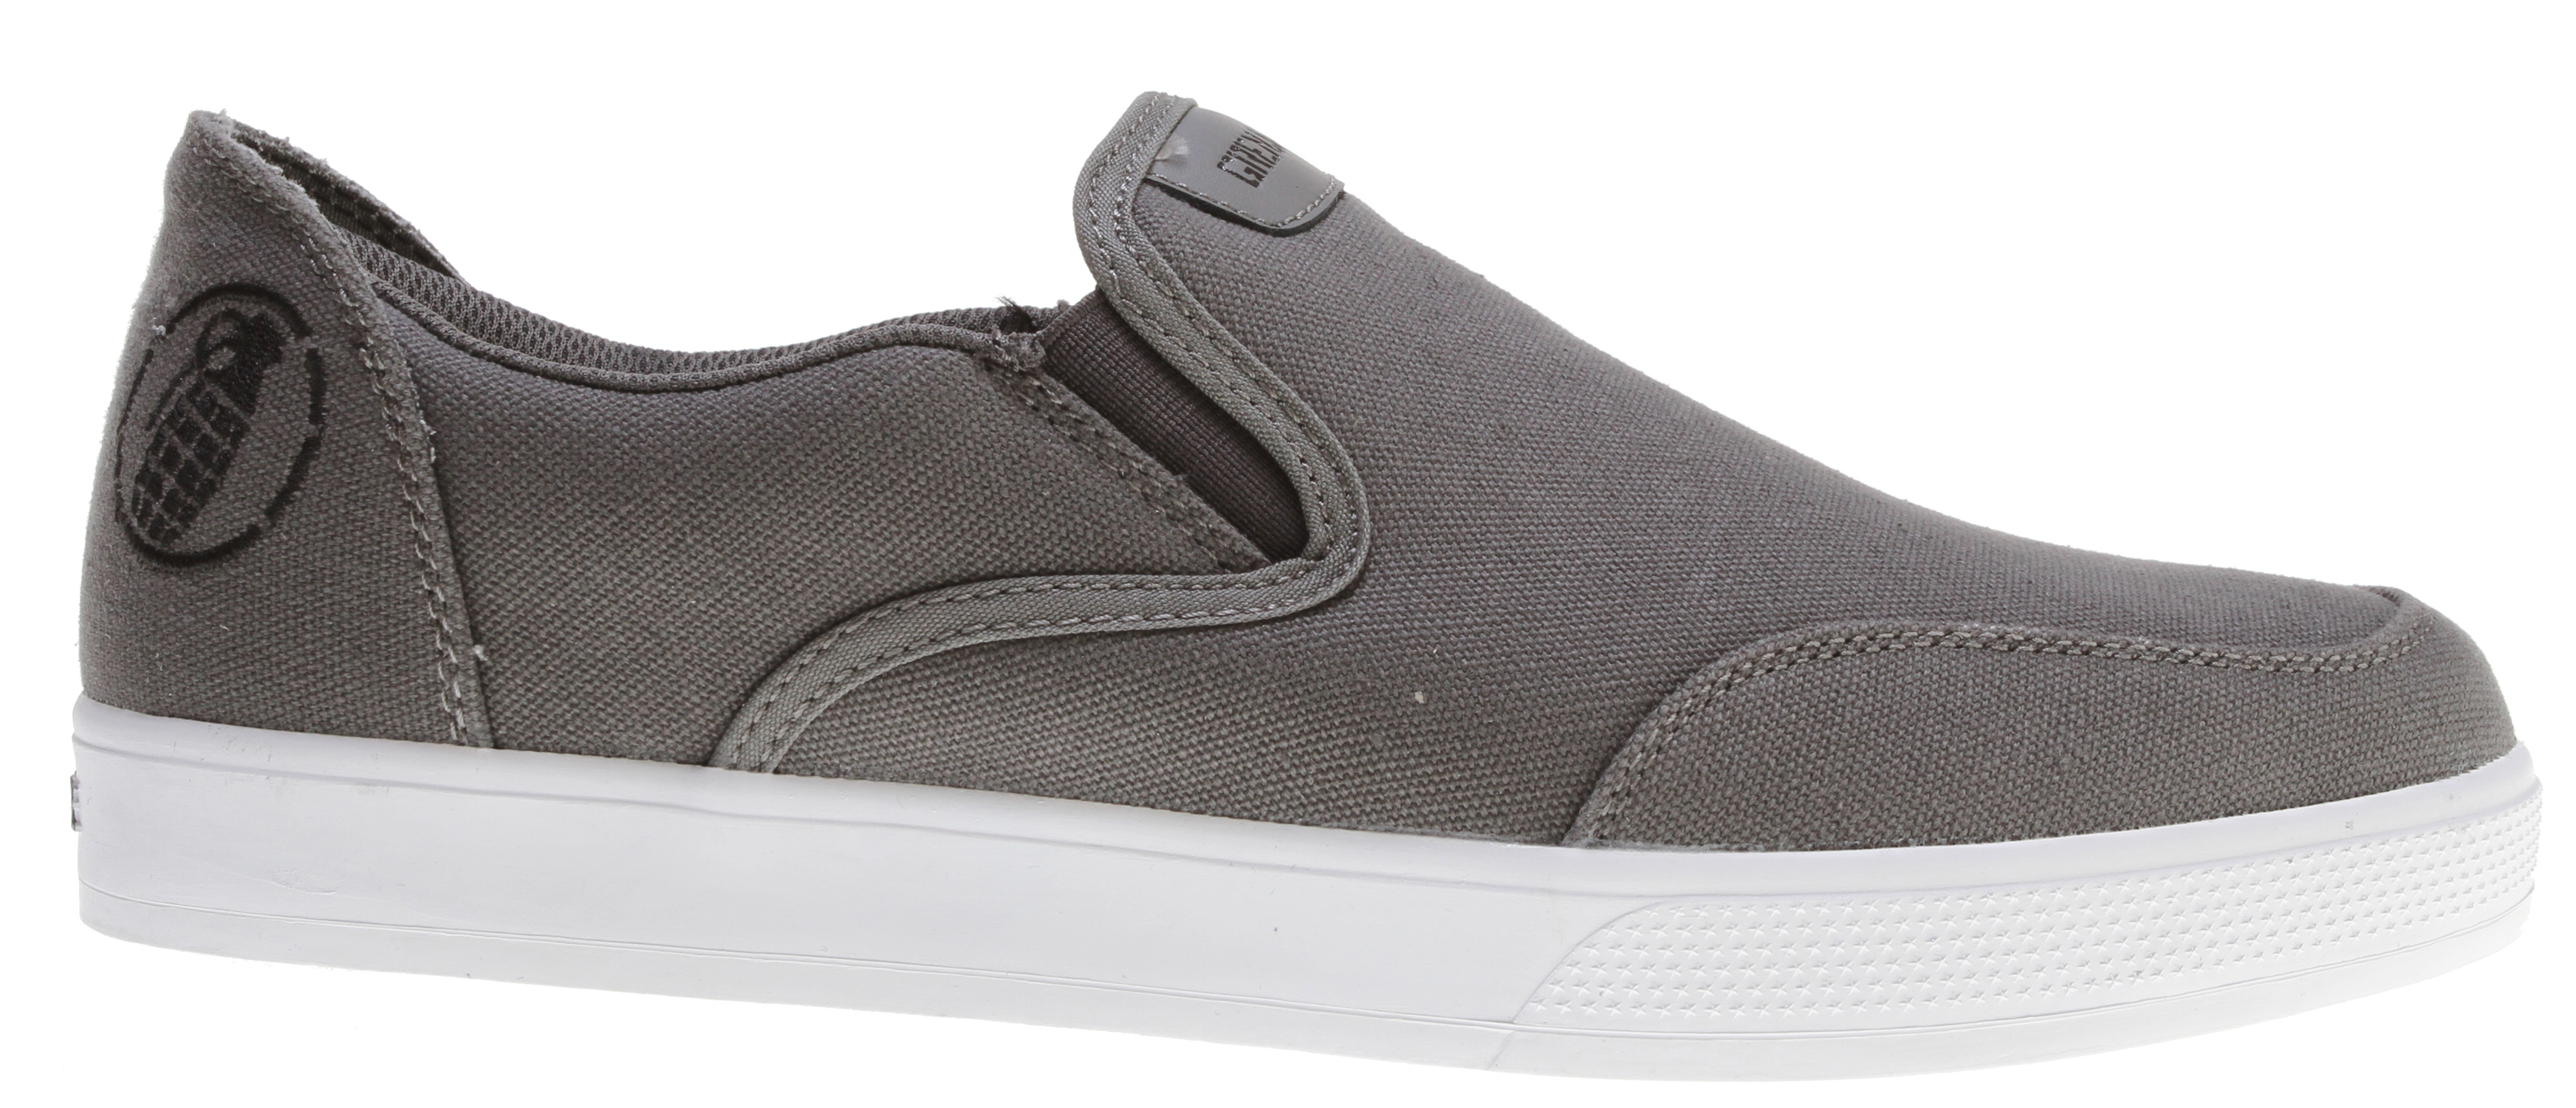 Key Features of the Grenade No Strings Attached Shoes: Cotton canvas upper Durable rubber cupsole Padded collar for comfort Protective toe overlay True slip-on silhouette - $27.95